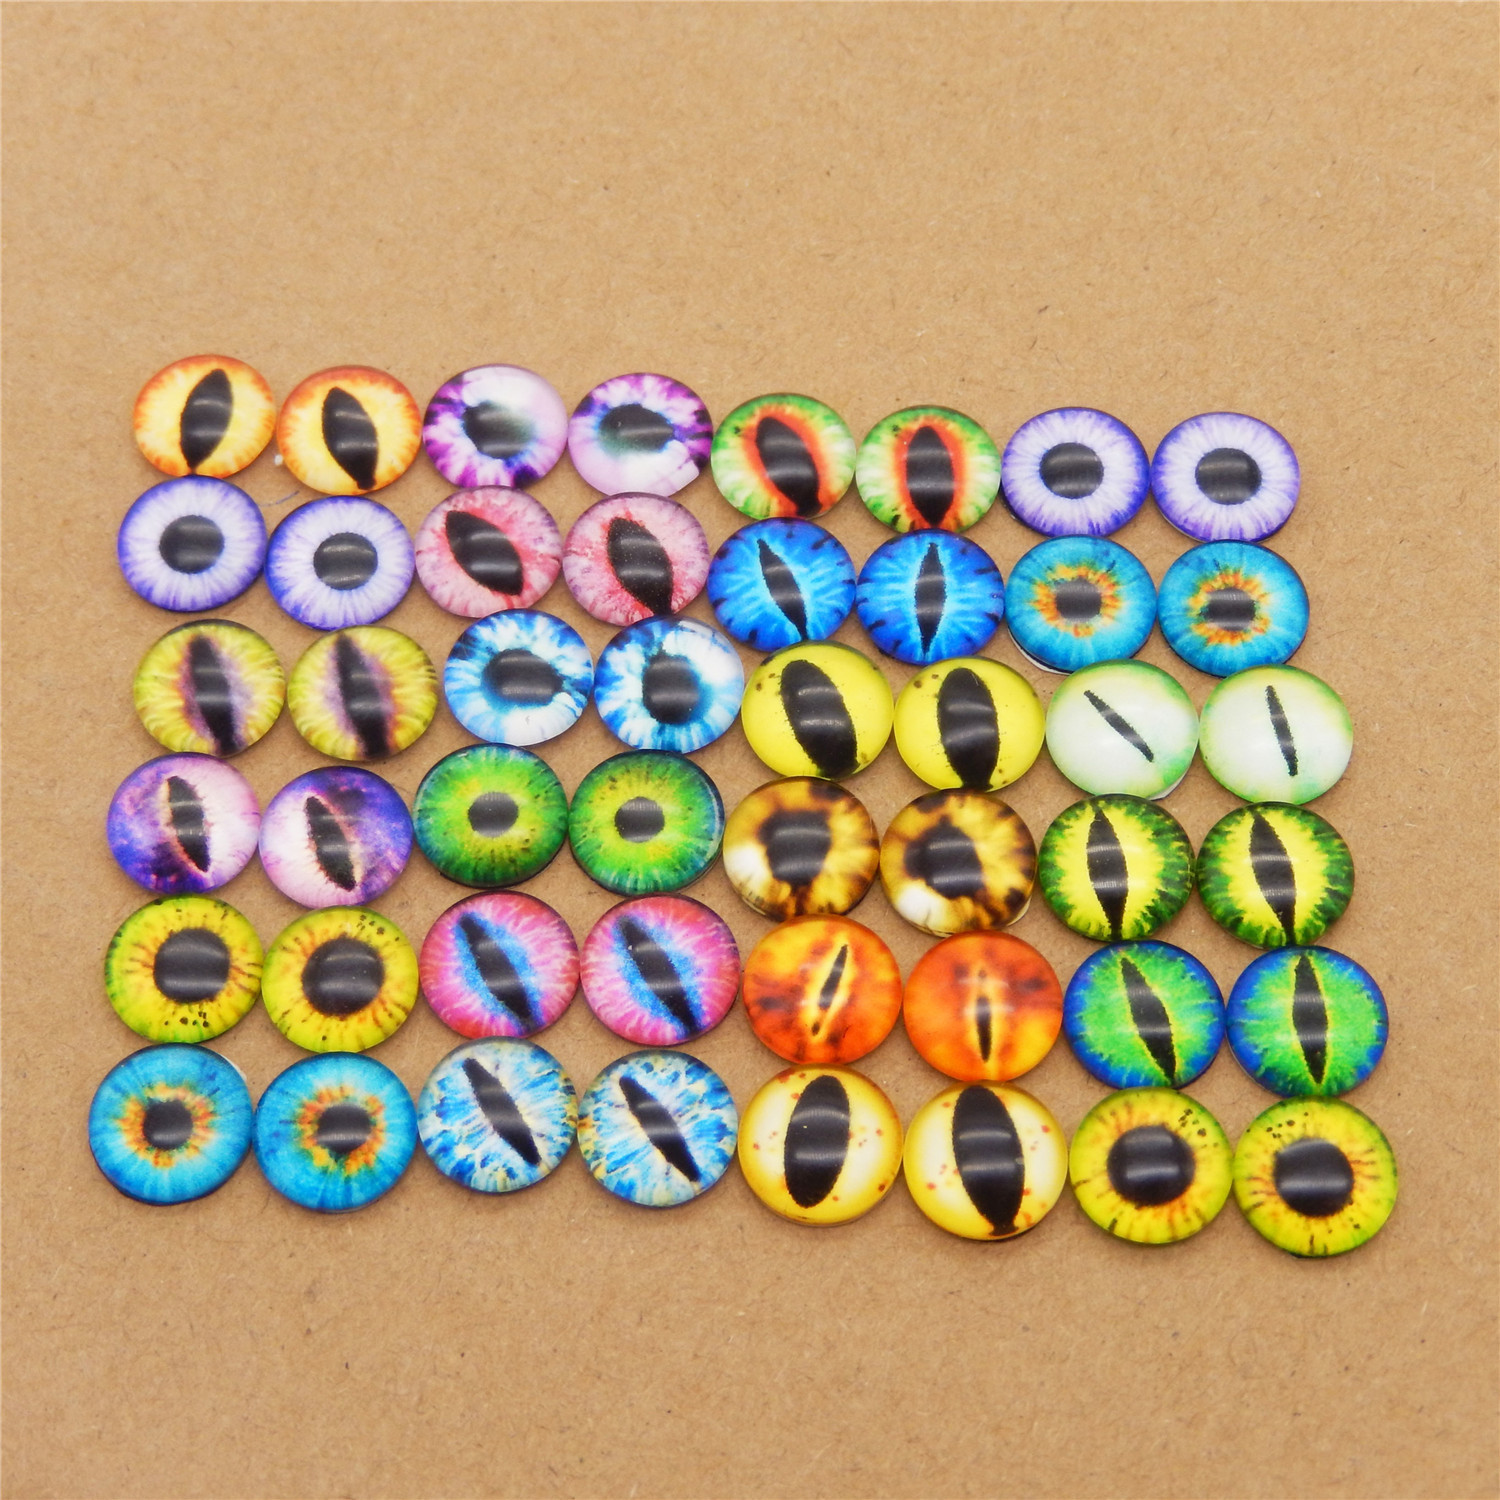 10-50PCS Round 6MM-30MM Glass Dragon Cat Eyes Cabochon Charms Accessory Glass Cabochon Multi Color Horse Eyes Cat Pattern Crafts(China)